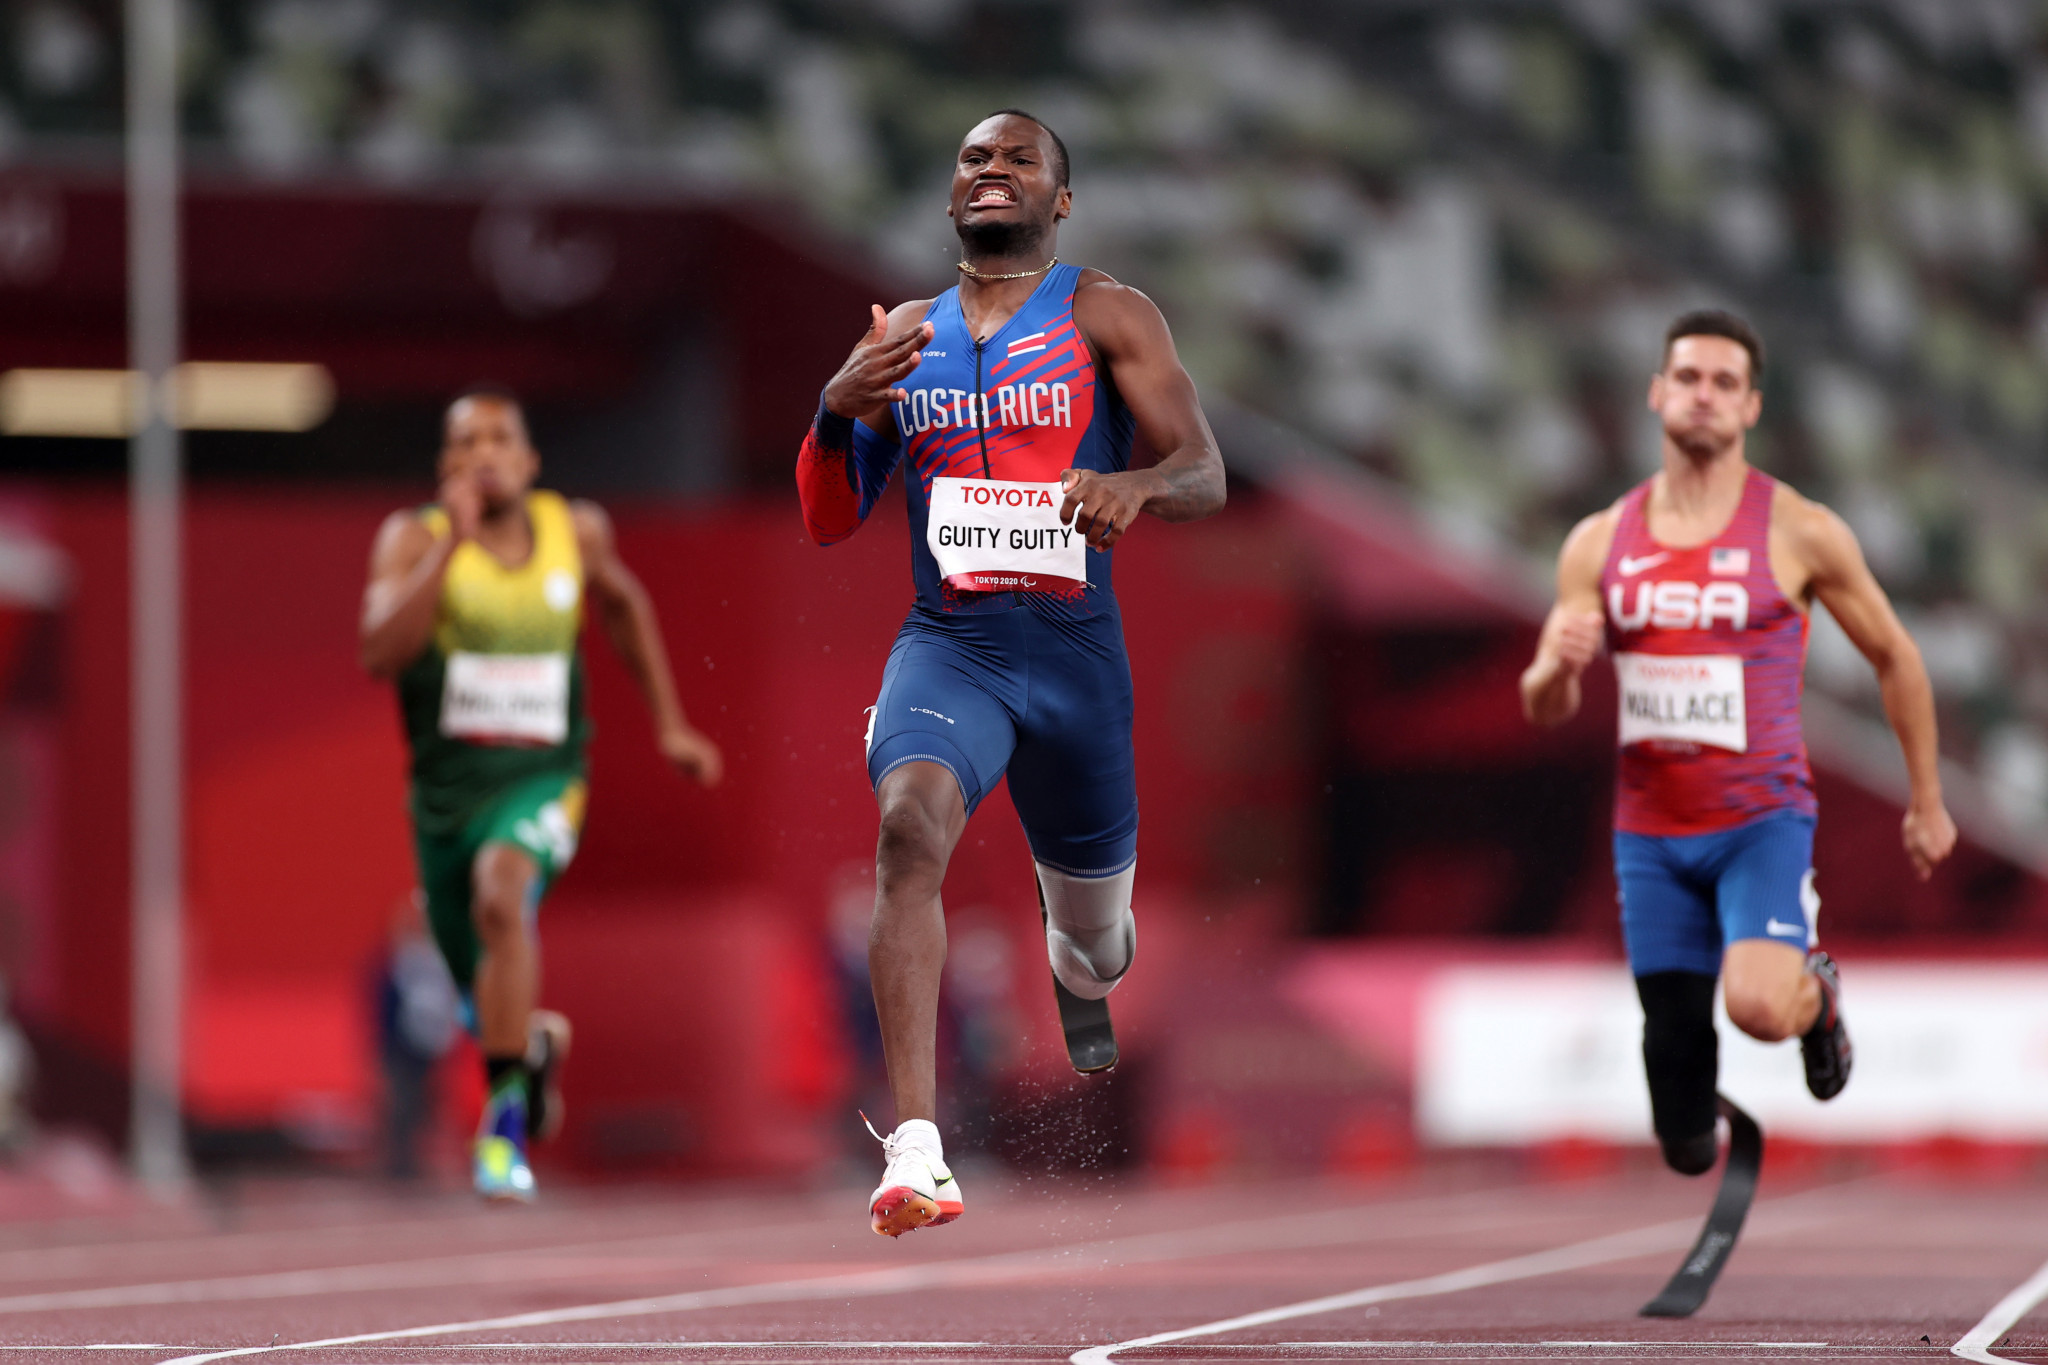 Sherman Isidro Guity Guity won Costa Rica's first Paralympic gold medal ©Getty Images